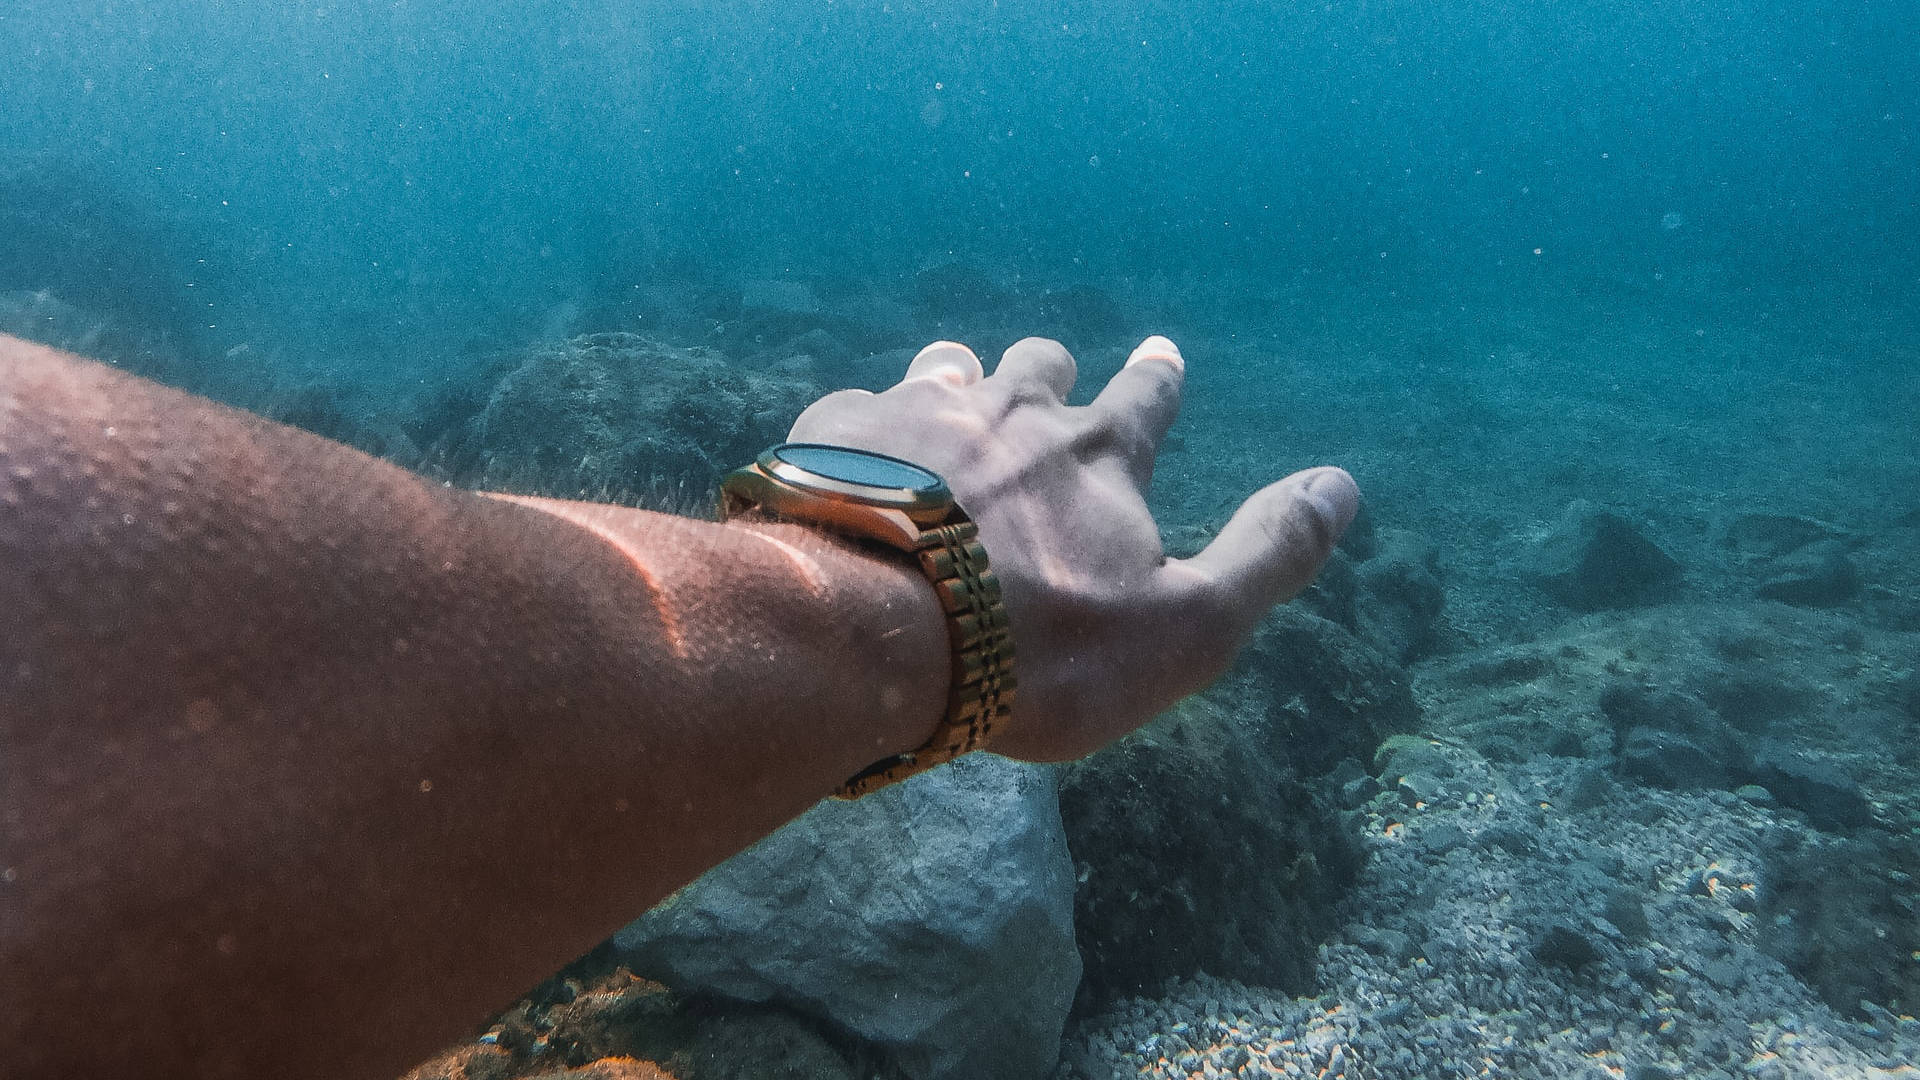 High end watch being used underwater by customer in Airdrie after water resistance testing